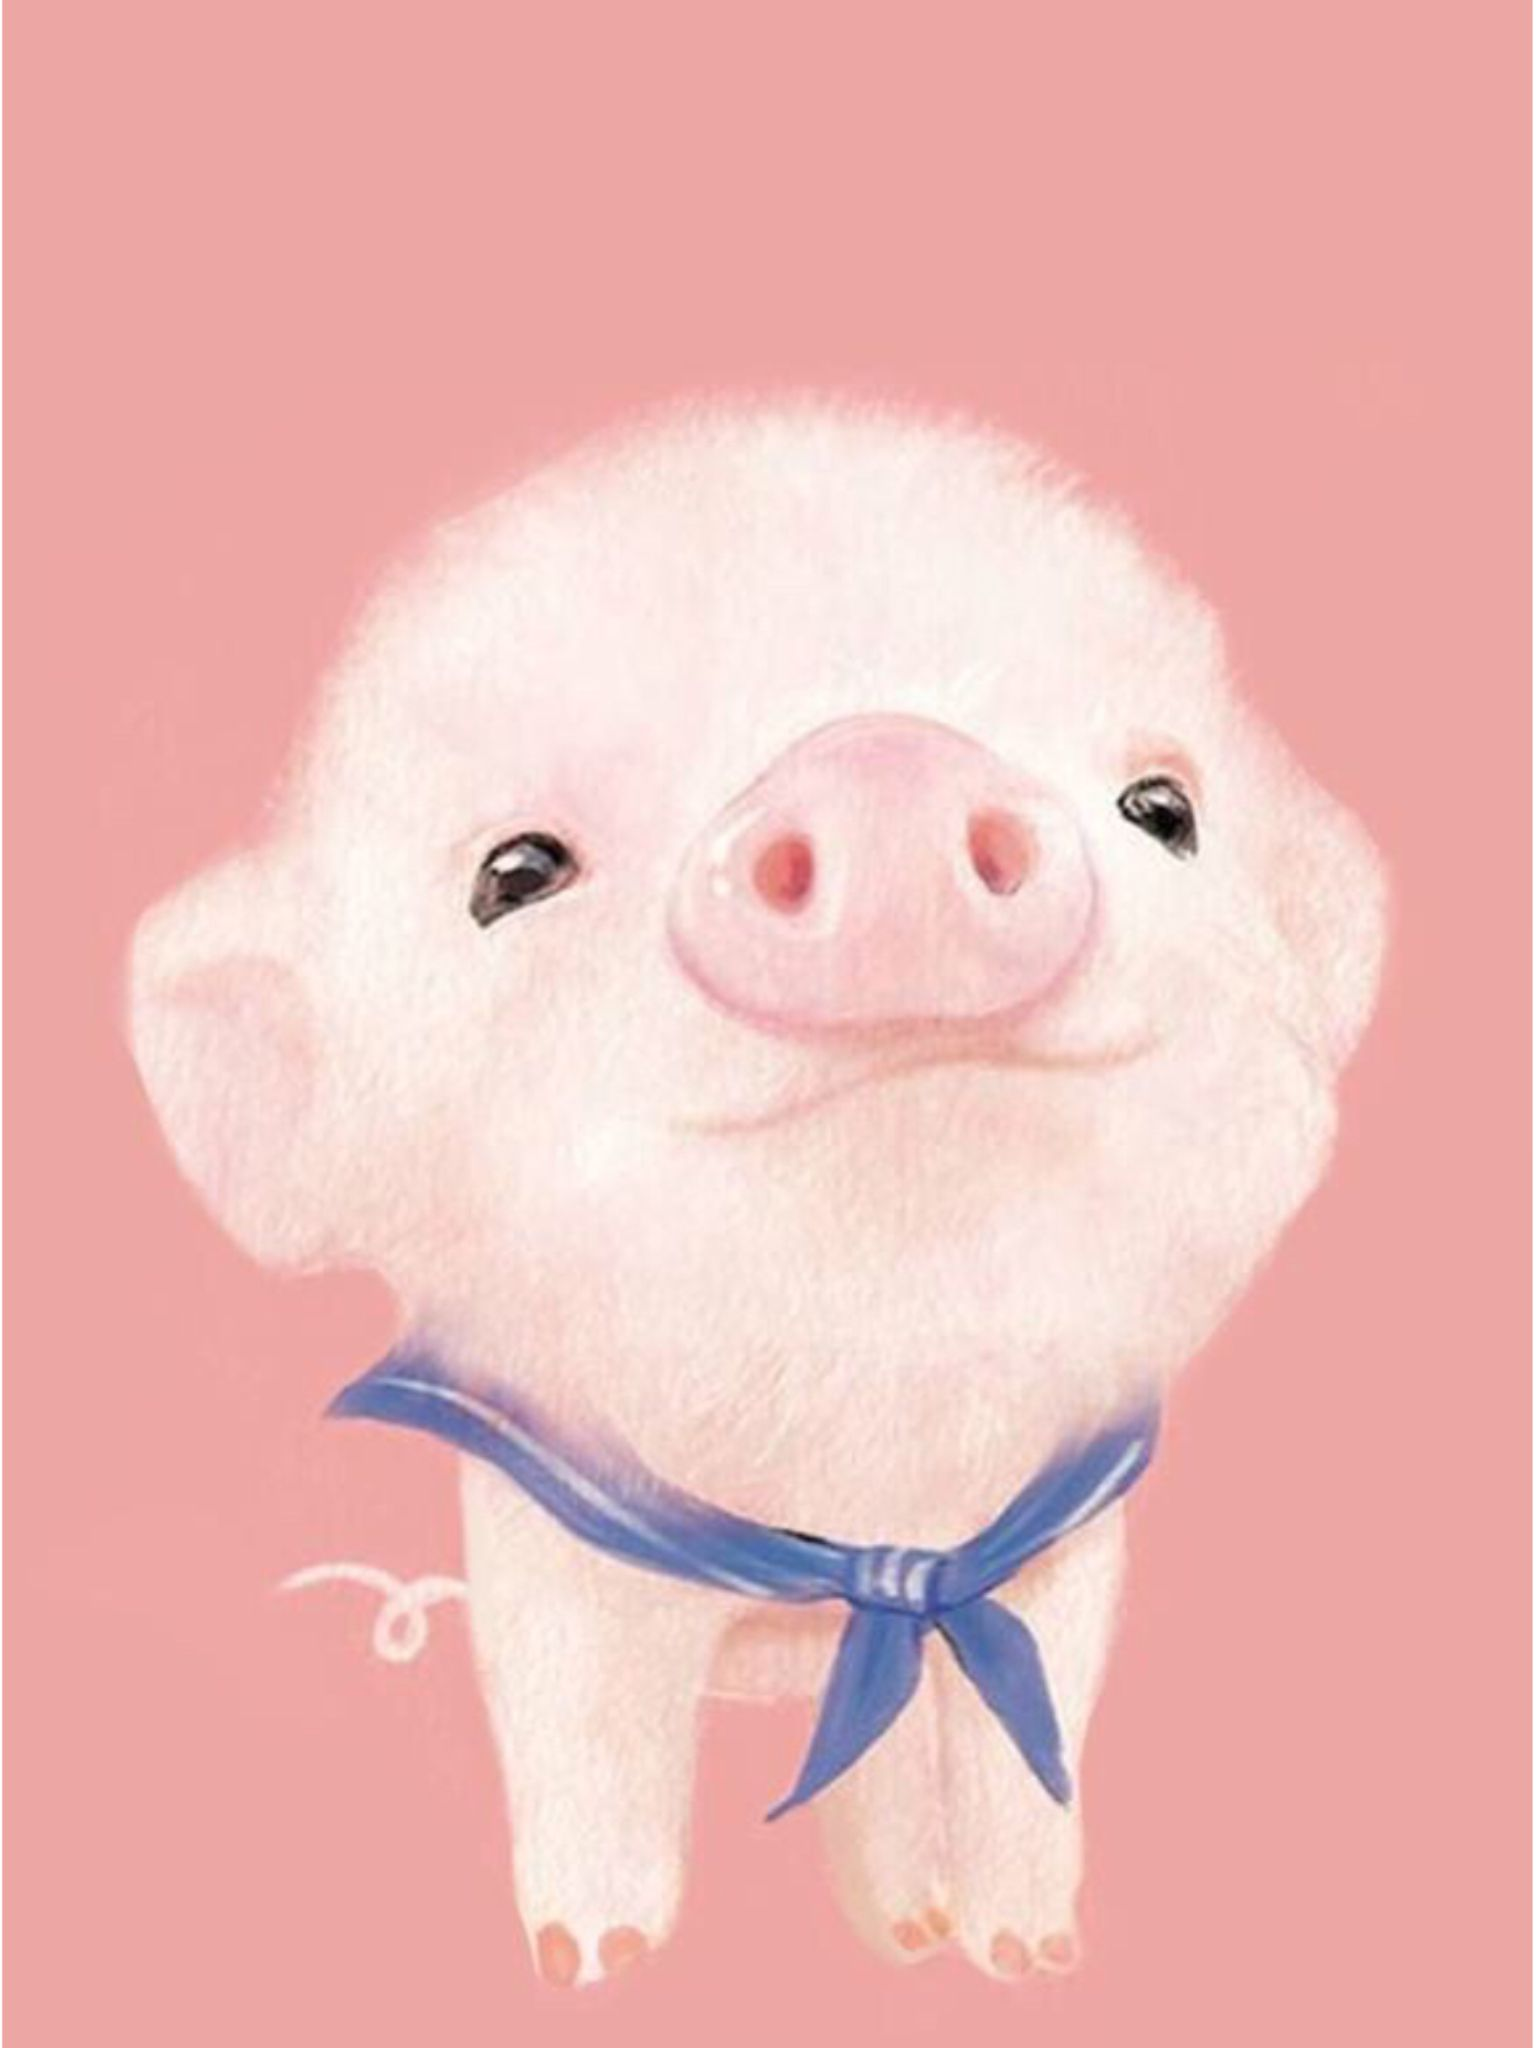 cute pig wallpaper wallpapers pinterest pig wallpaper